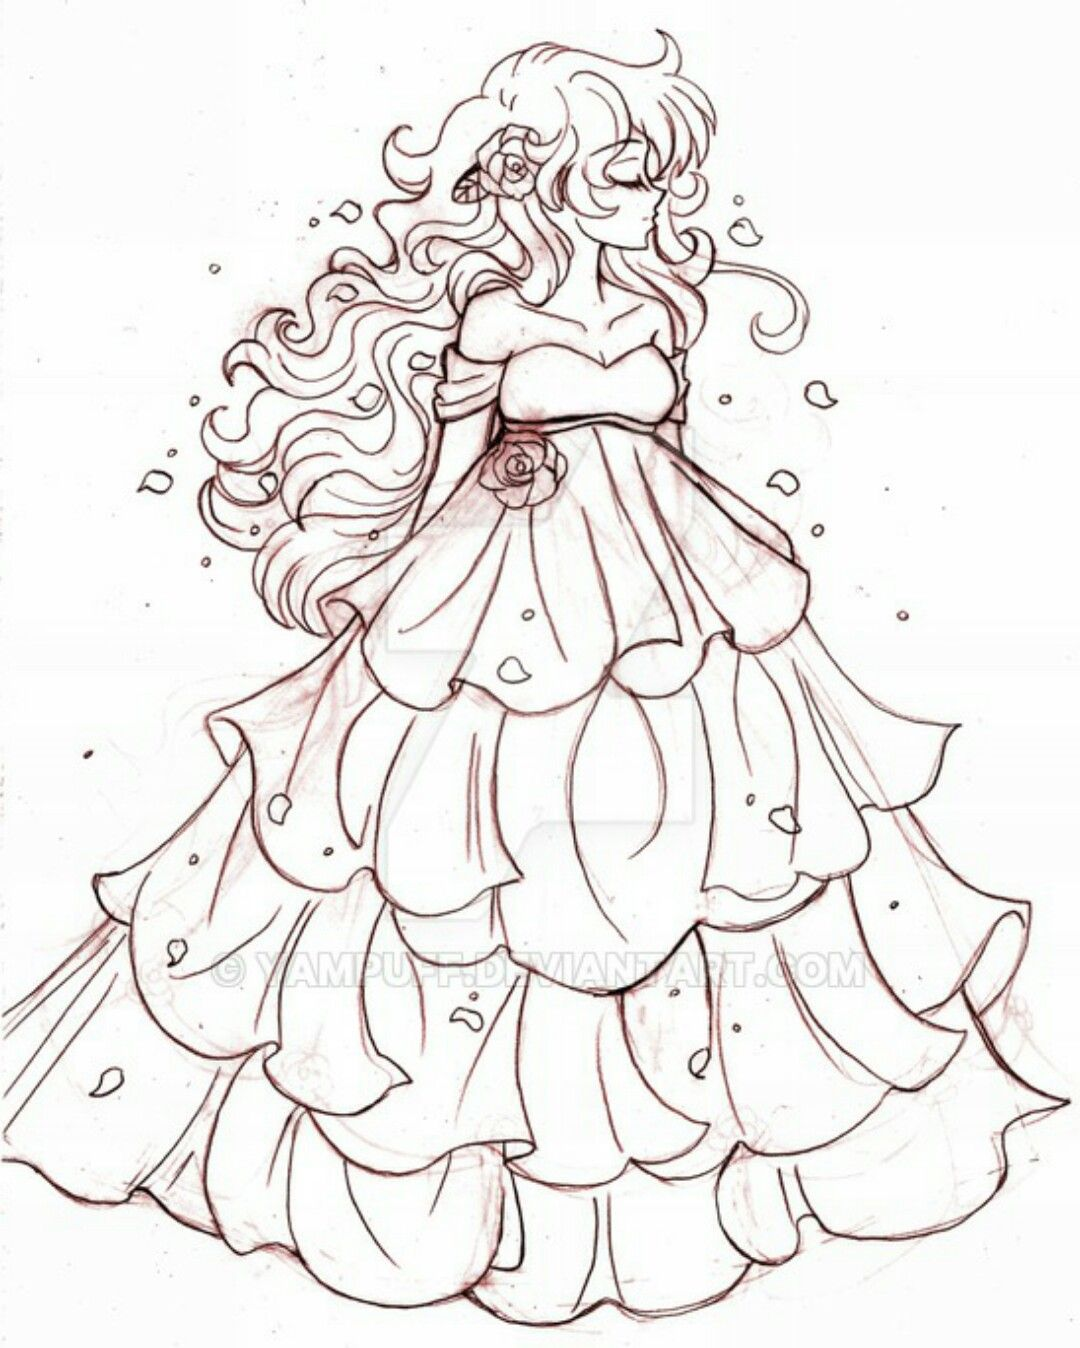 Princess diamond draws and ever after high in pinterest